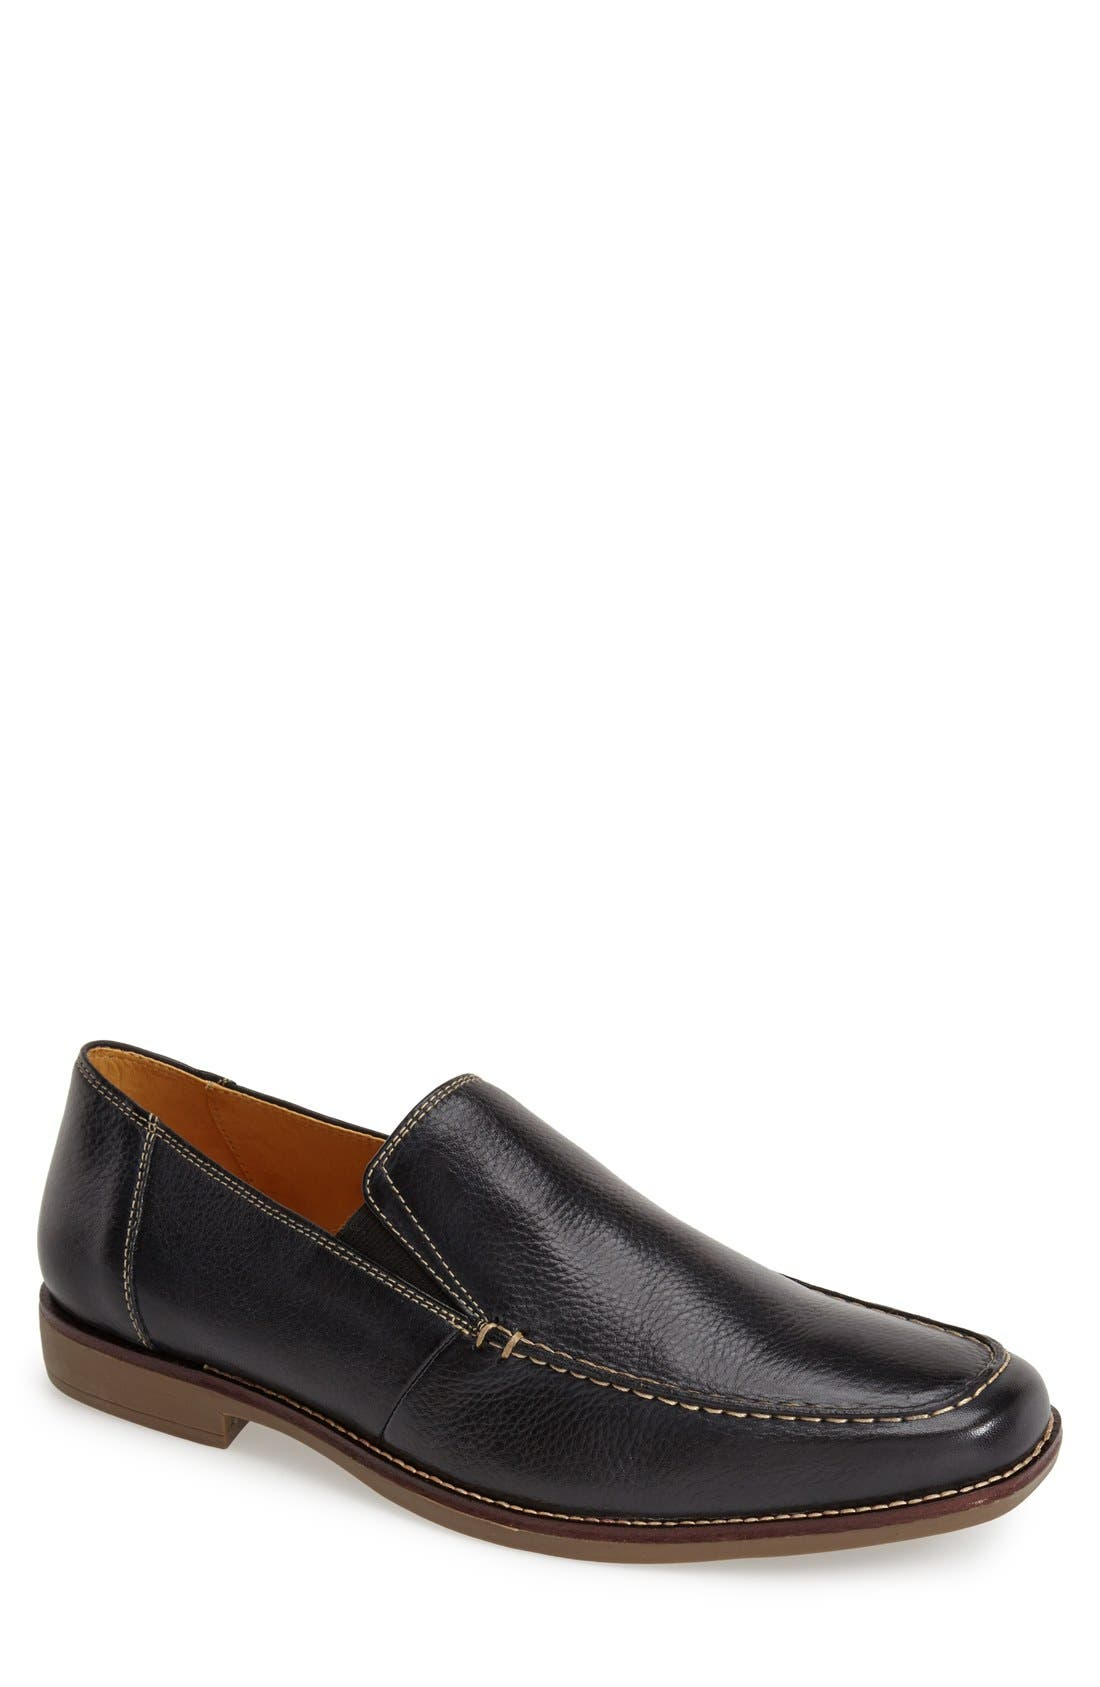 'Easy' Leather Venetian Loafer,                             Main thumbnail 1, color,                             NAVY